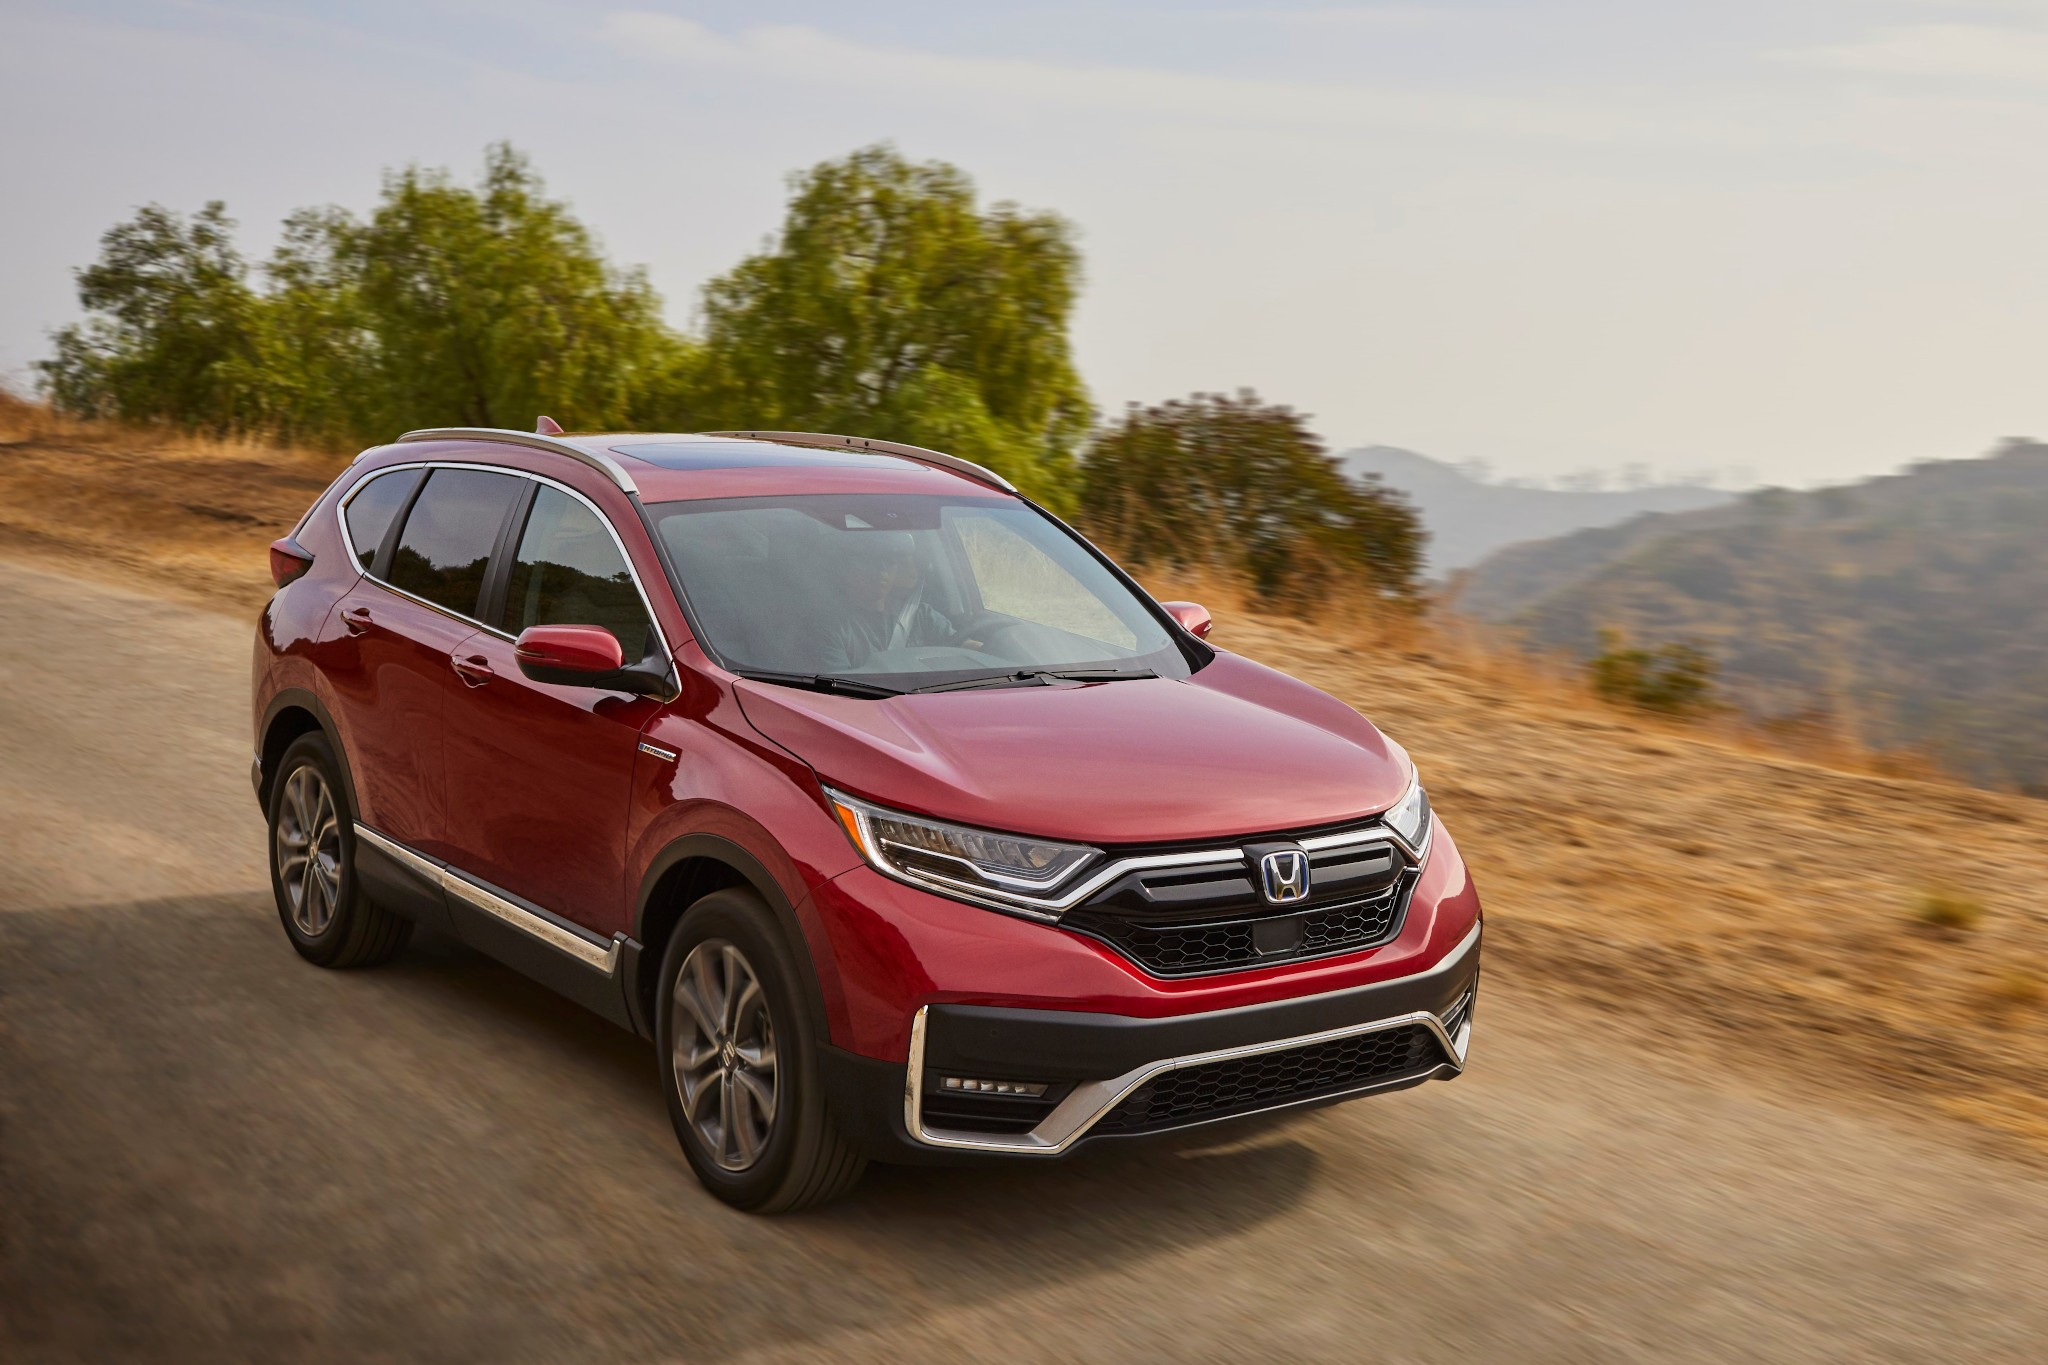 2020 honda cr-v review: a little better, a lot more hybrid